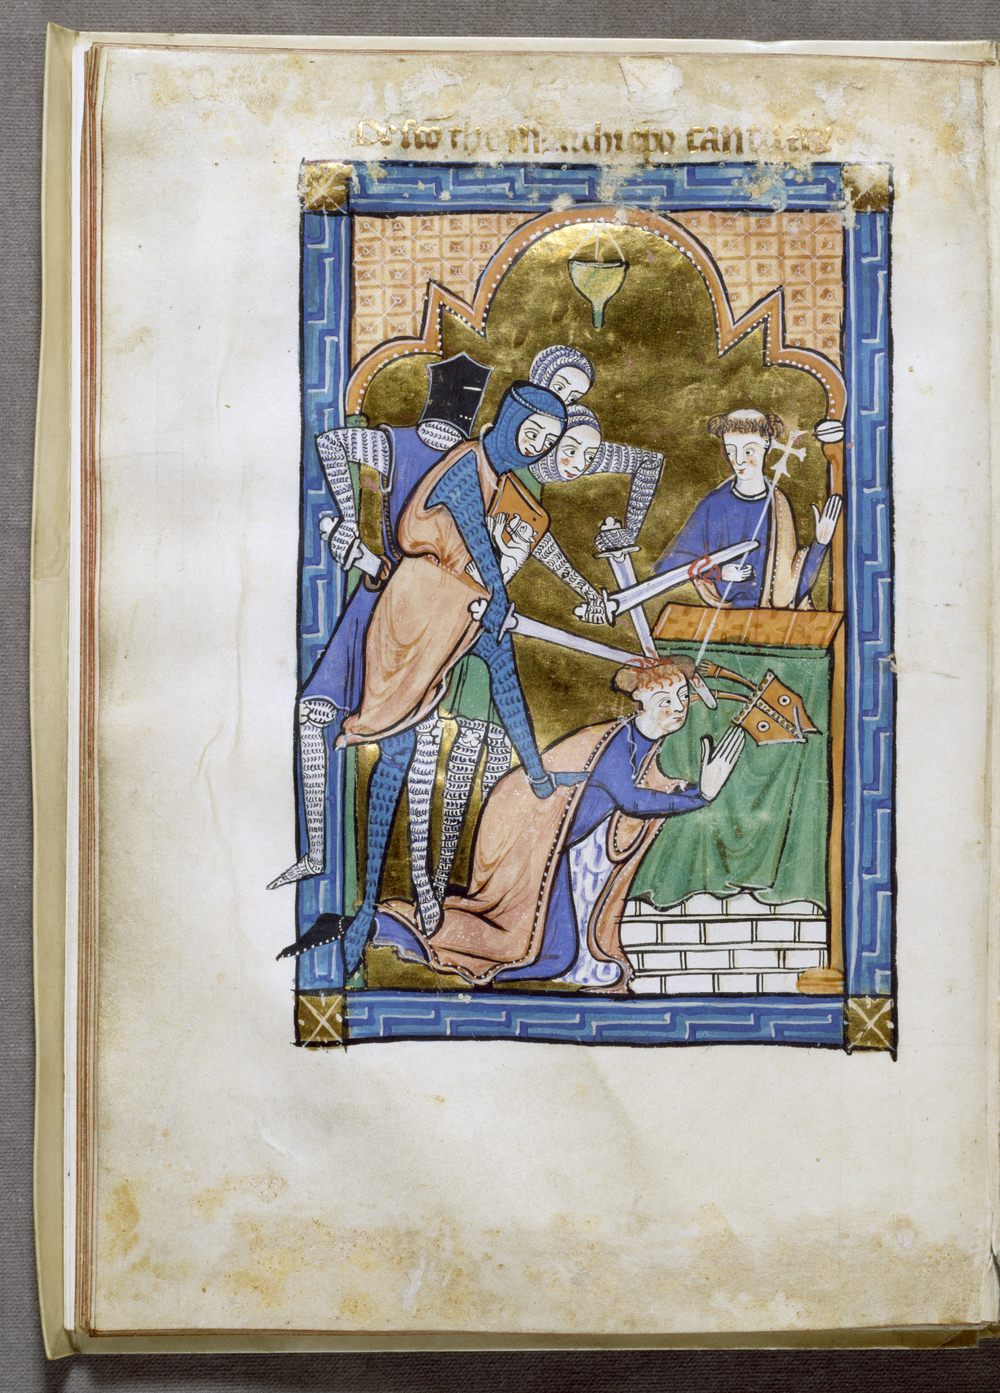 Miniature from an English psalter, circa 1250, depicting the shocking murder of St. Thomas Becket in Canterbury Cathedral, Walters Art Museum, Baltimore. Note the border of the Greek key pattern, symbol of eternal life.